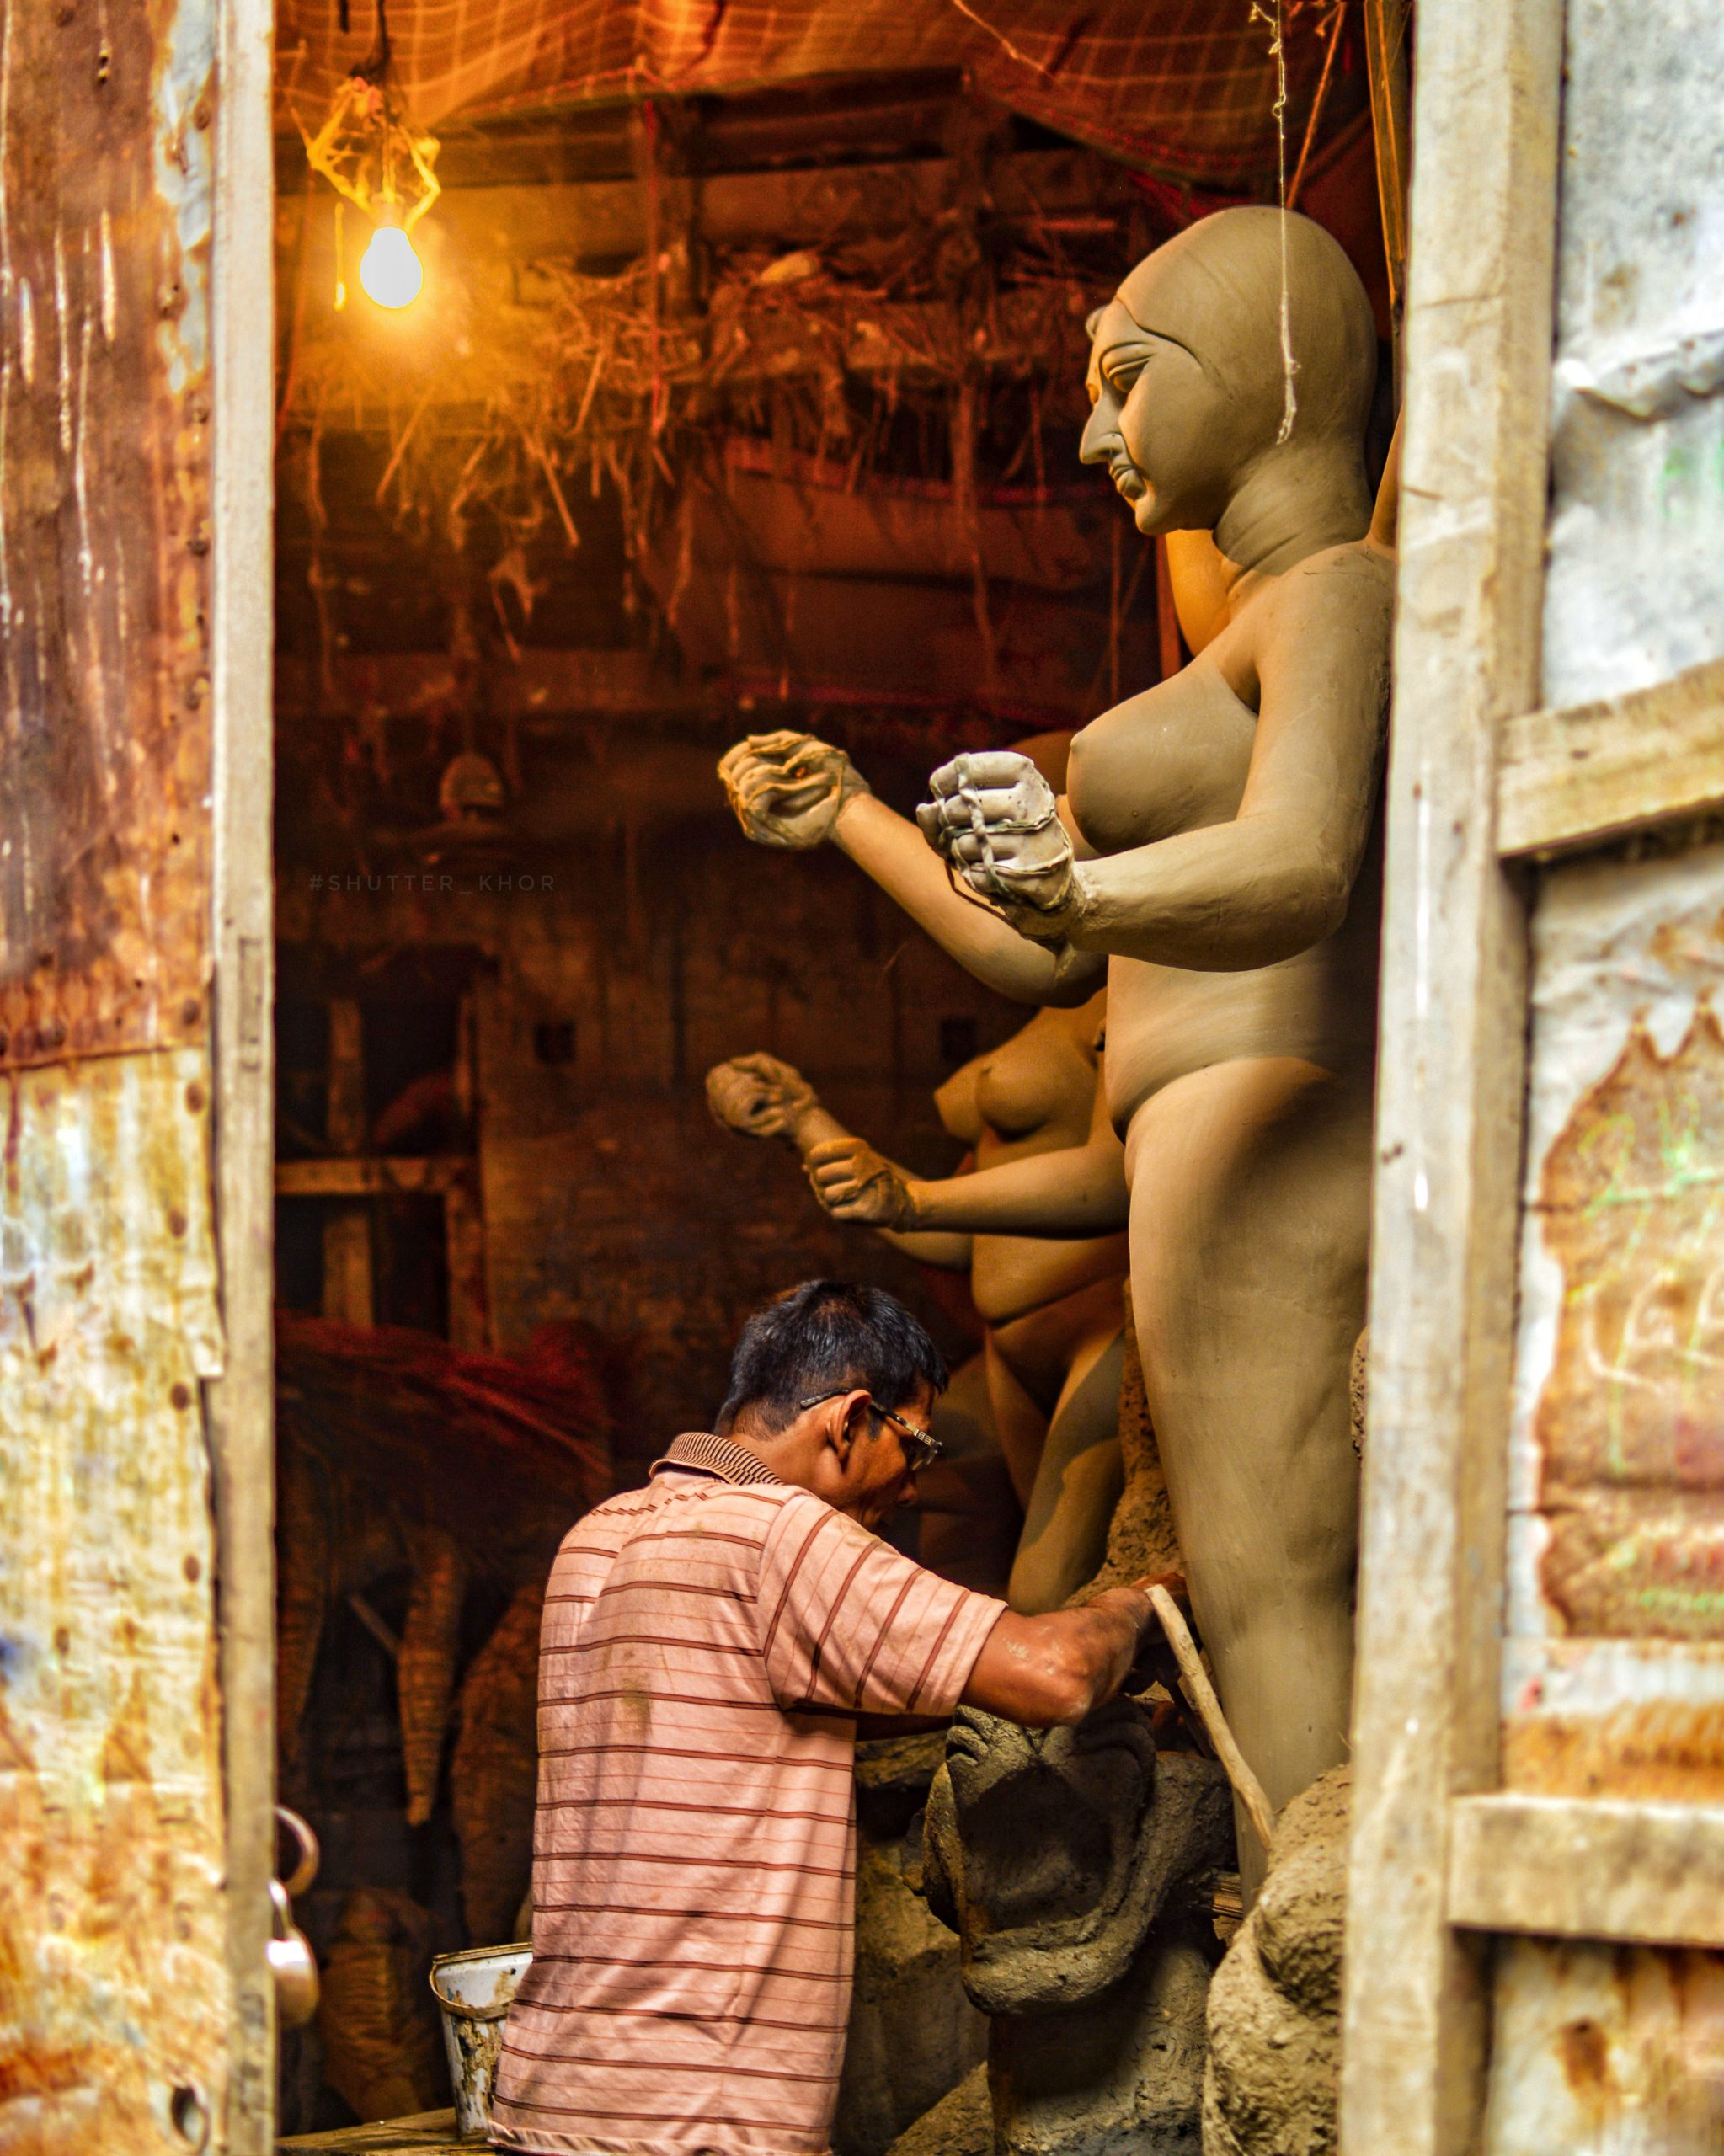 A craftsman working on statues